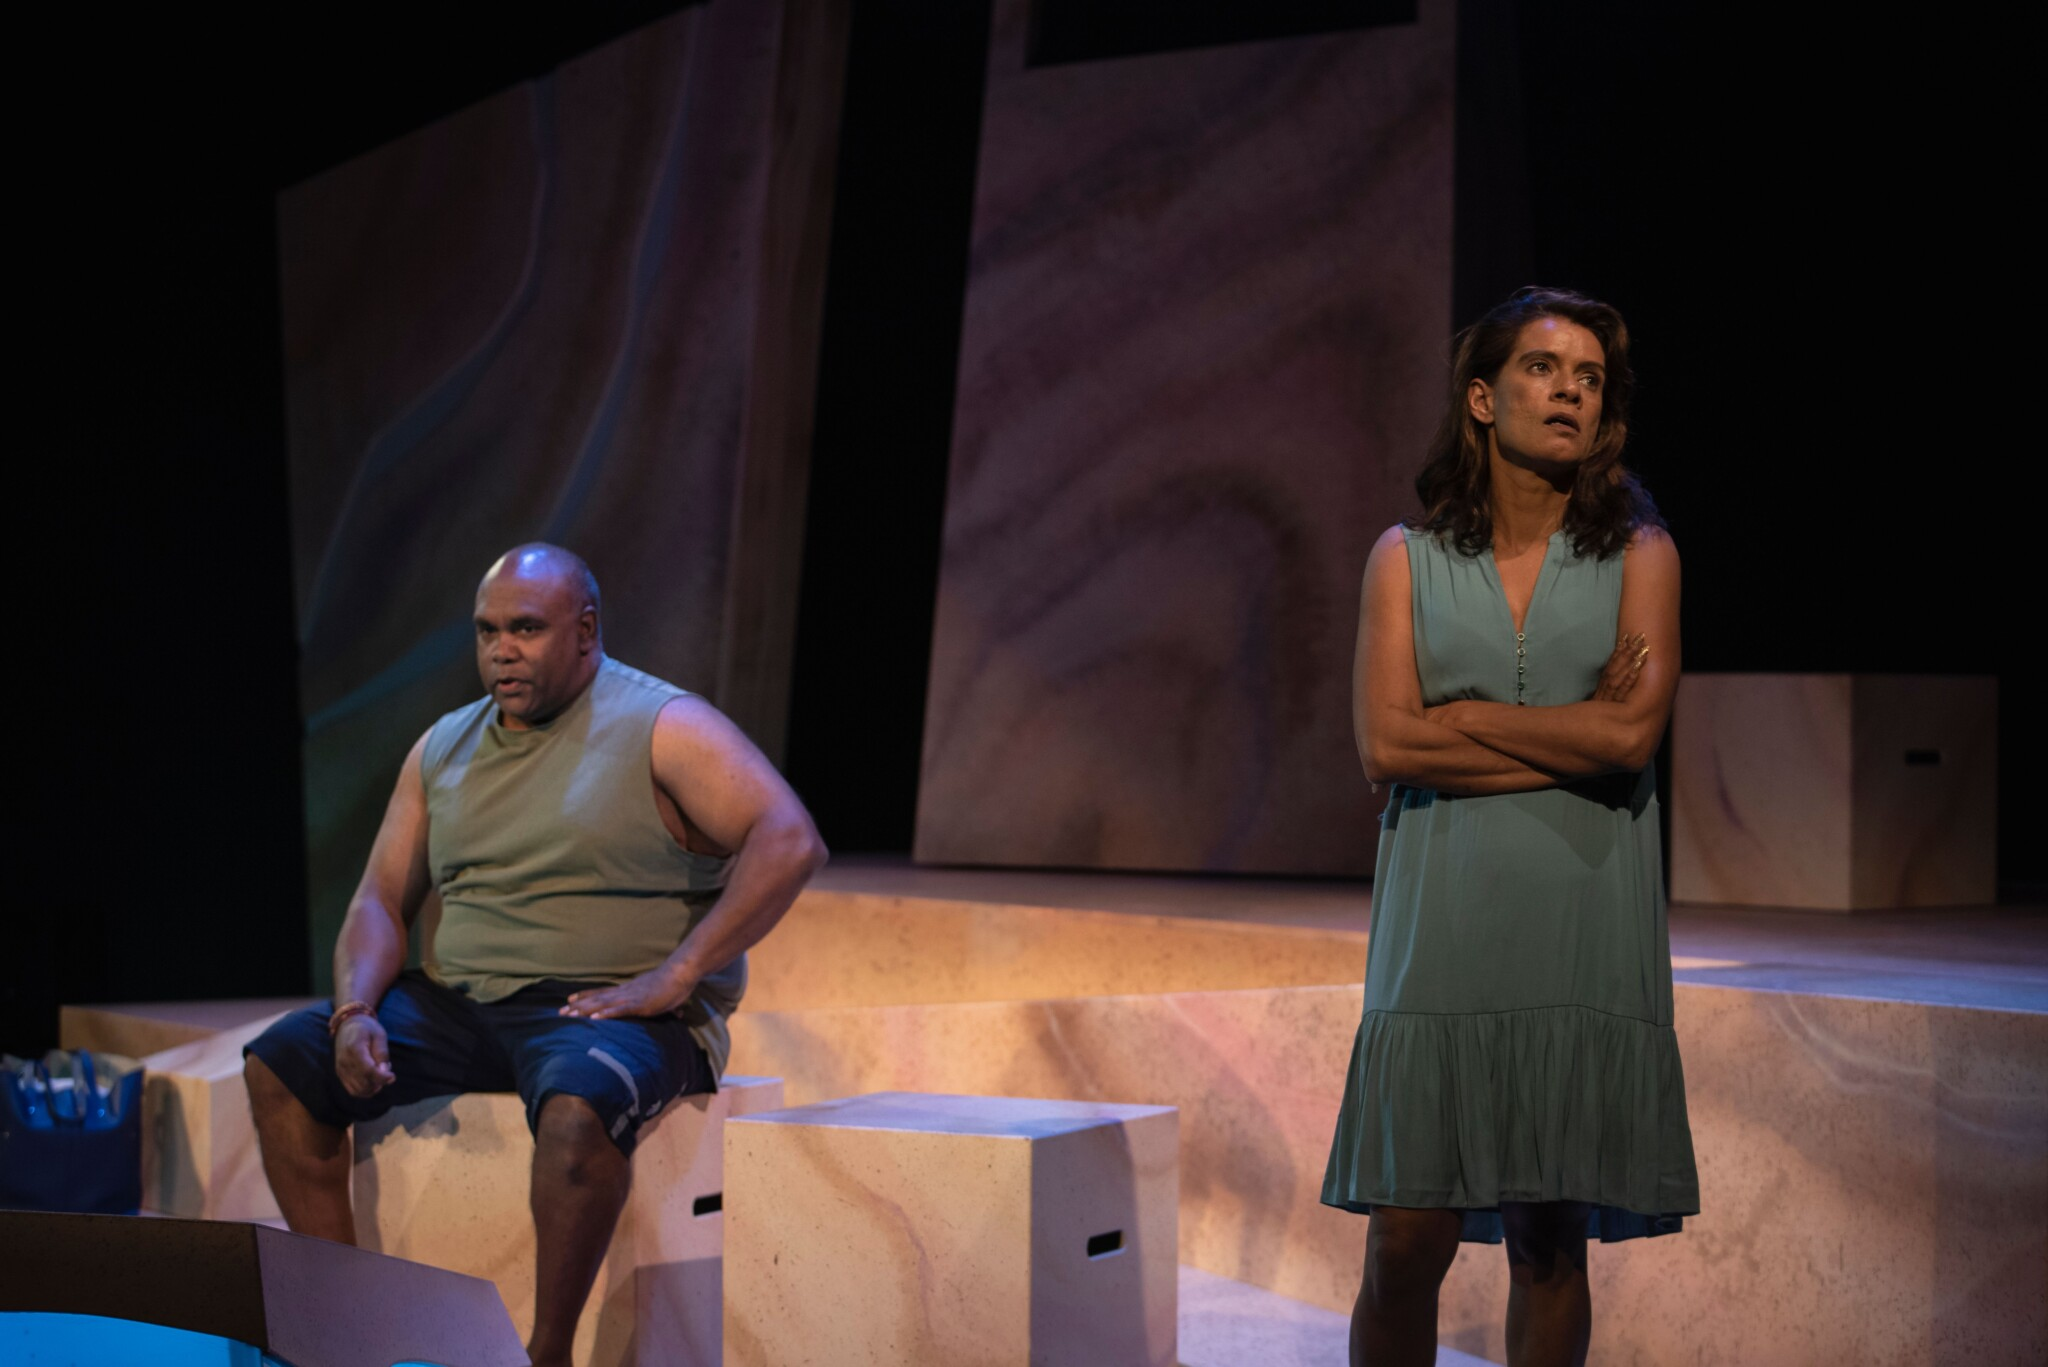 Trevor Ryan sits on the stage, Bobbi Henry has her arms crossed and back to him as if angry